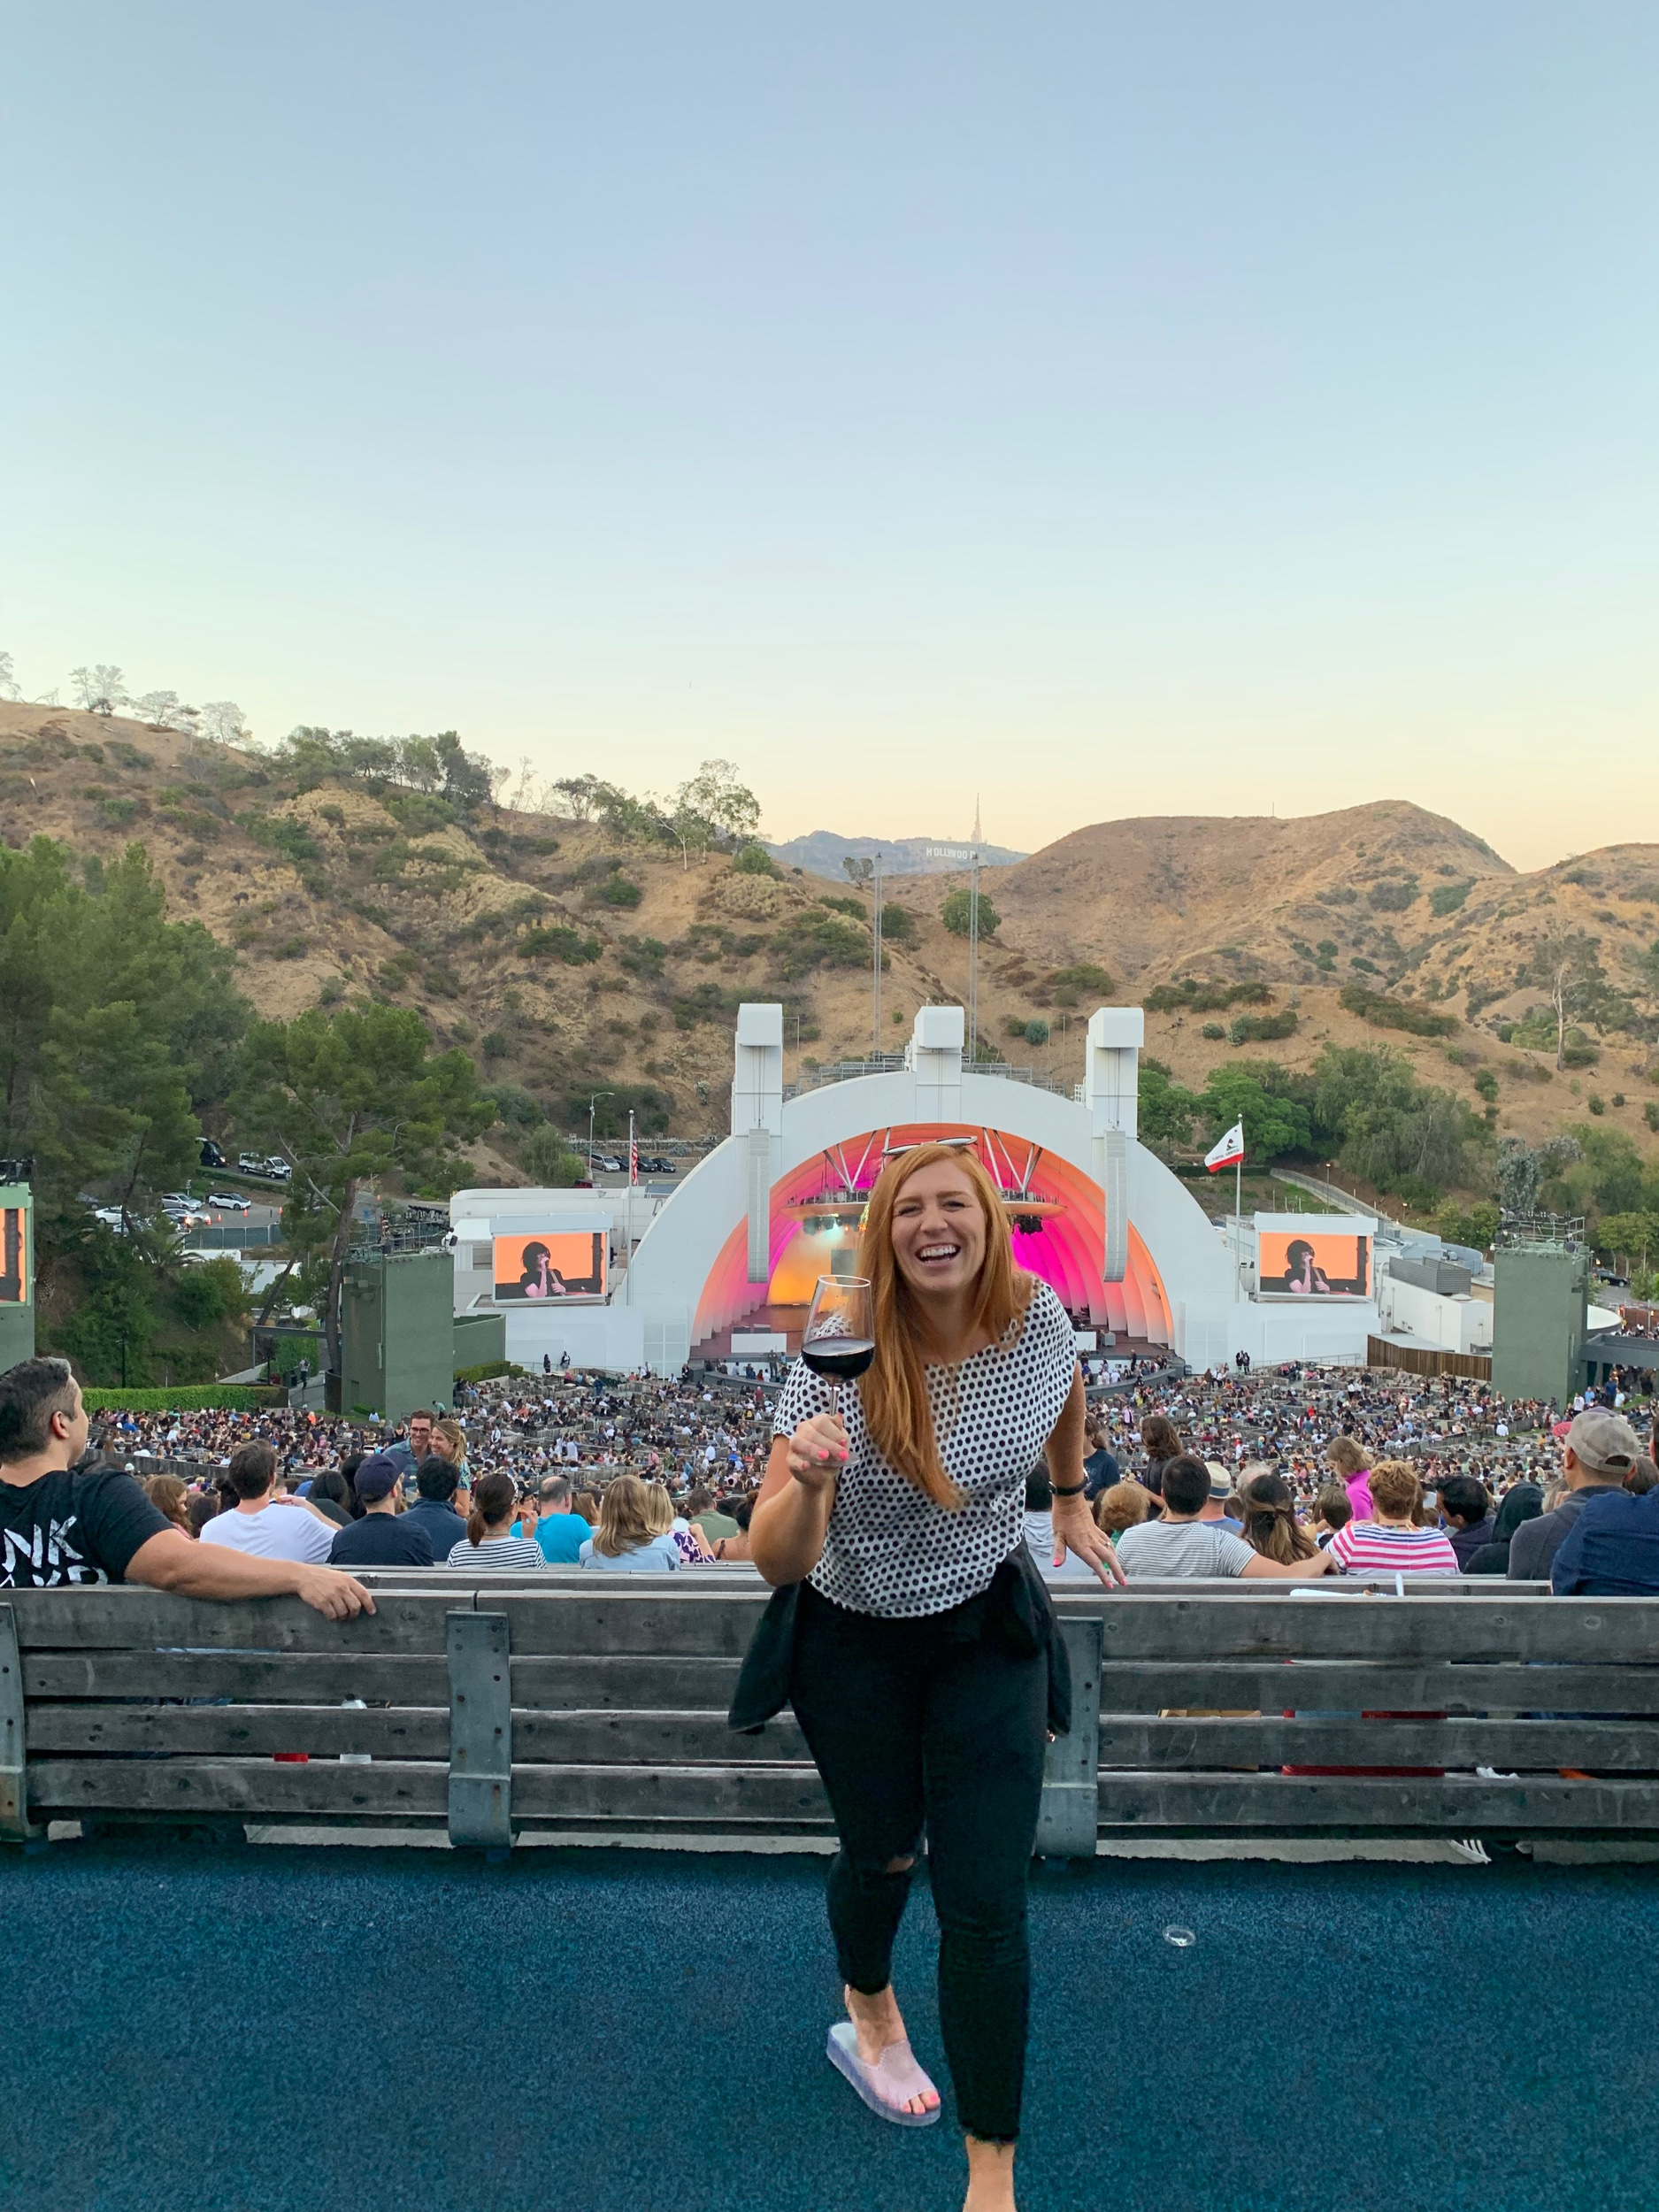 Peep the Hollywood sign above the stage!